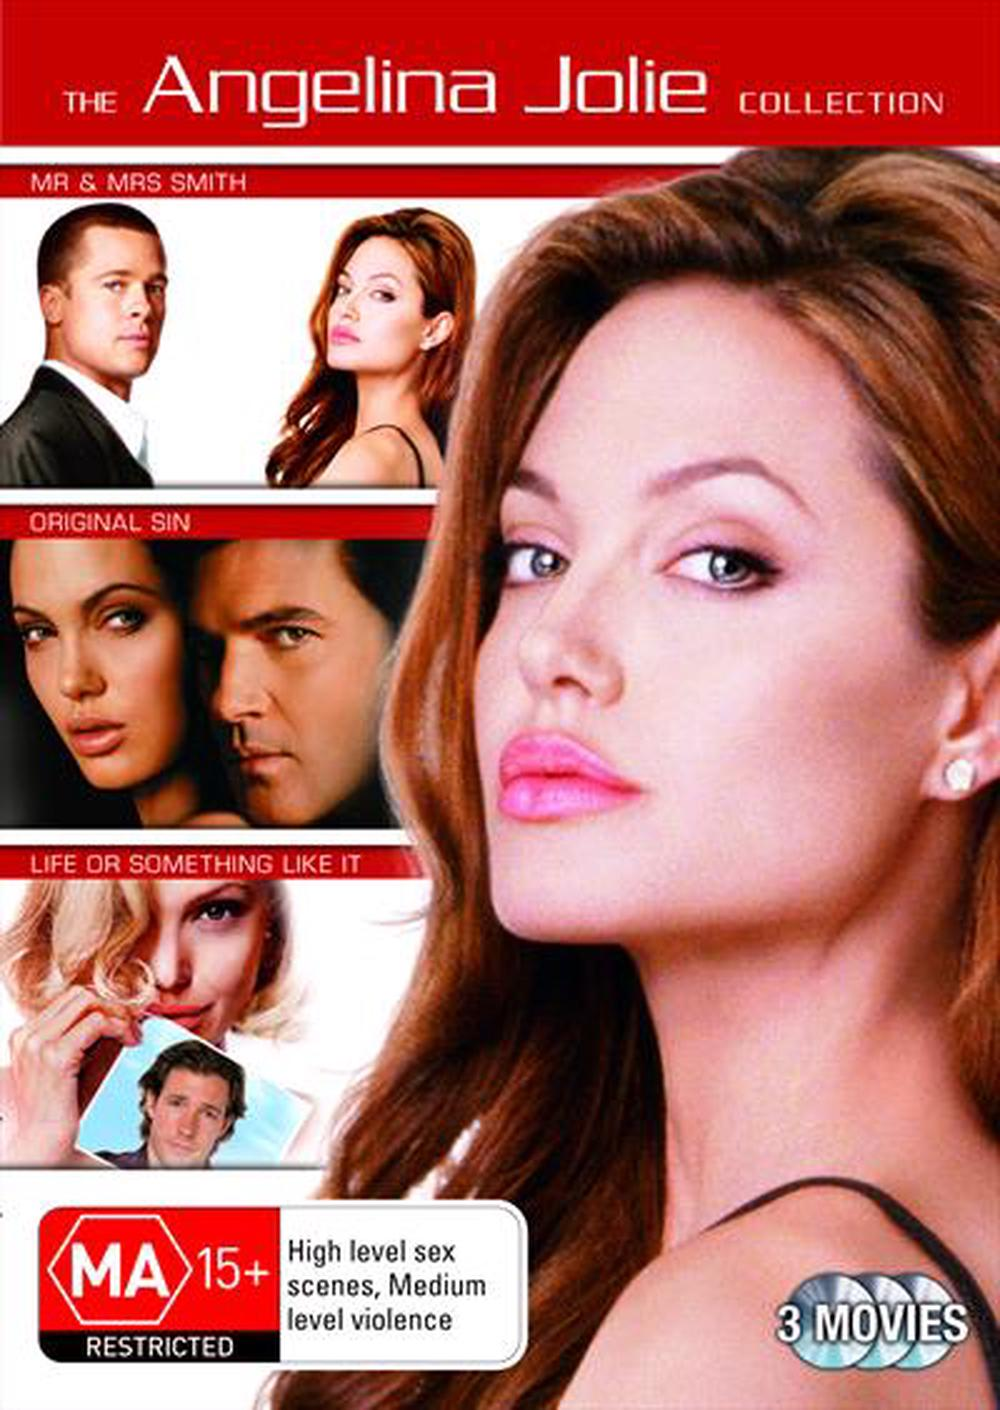 Angelina Jolie Original Sin angelina jolie 3 movie collection: mr and mrs smith / life